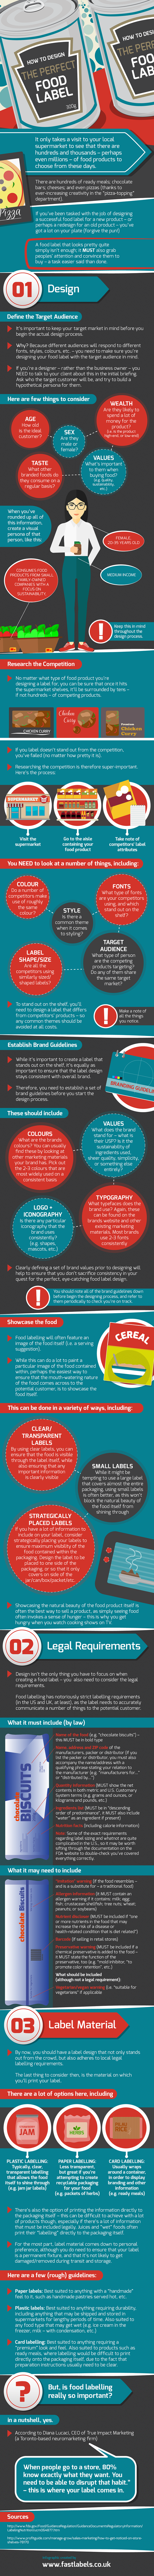 how-to-create-the-perfect-food-label-design-infographic